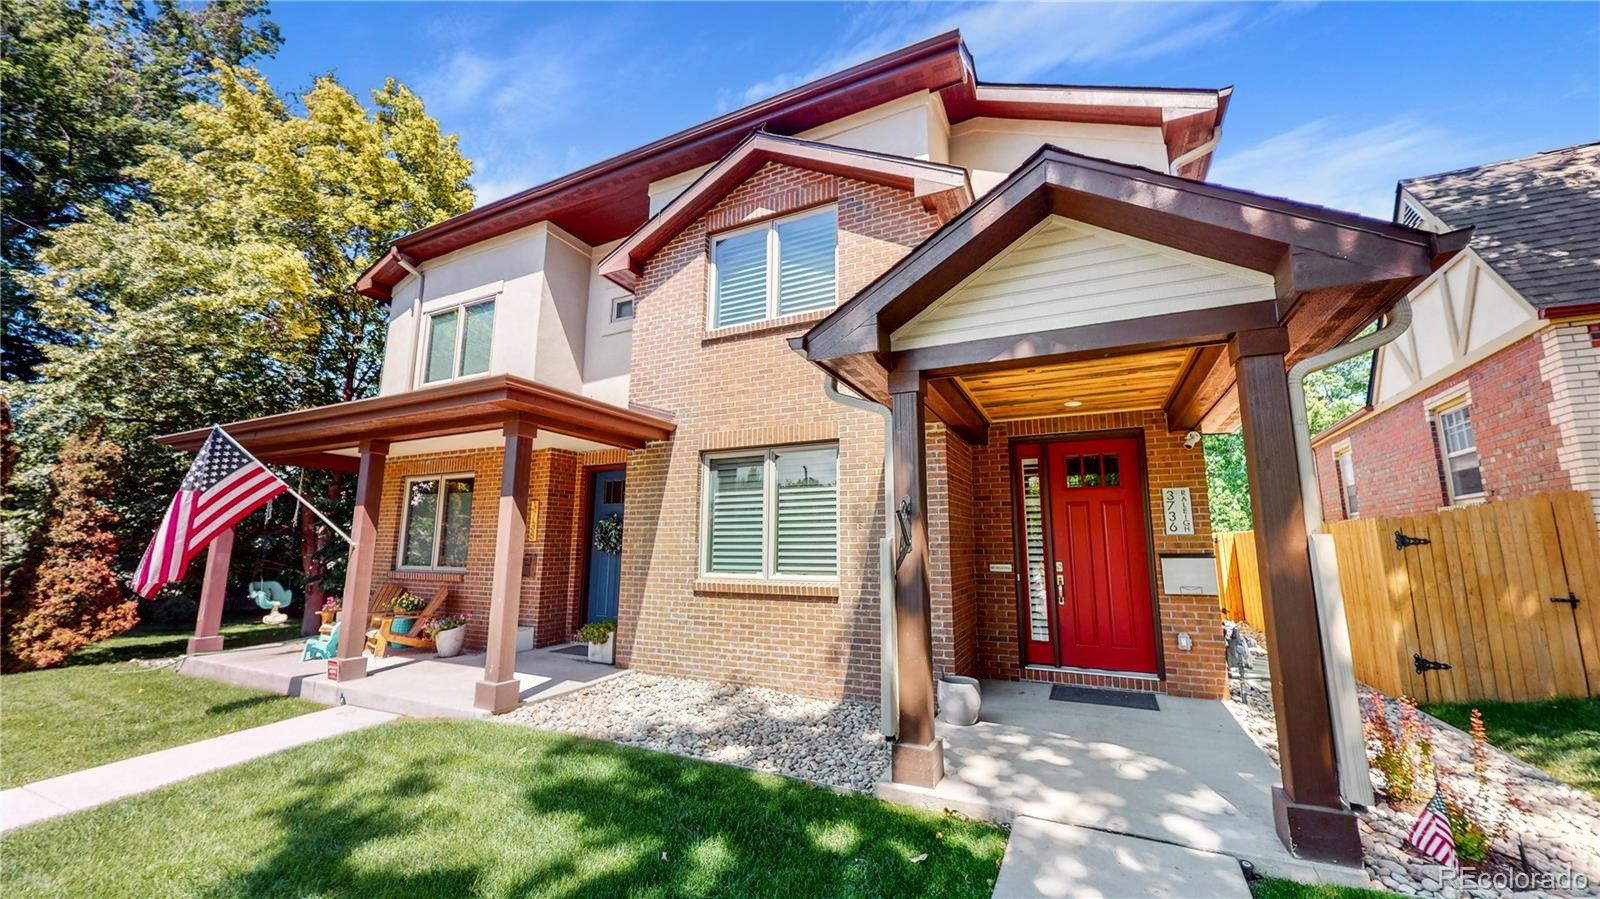 MLS# 4181061 - 1 - 3736 Raleigh Street, Denver, CO 80212